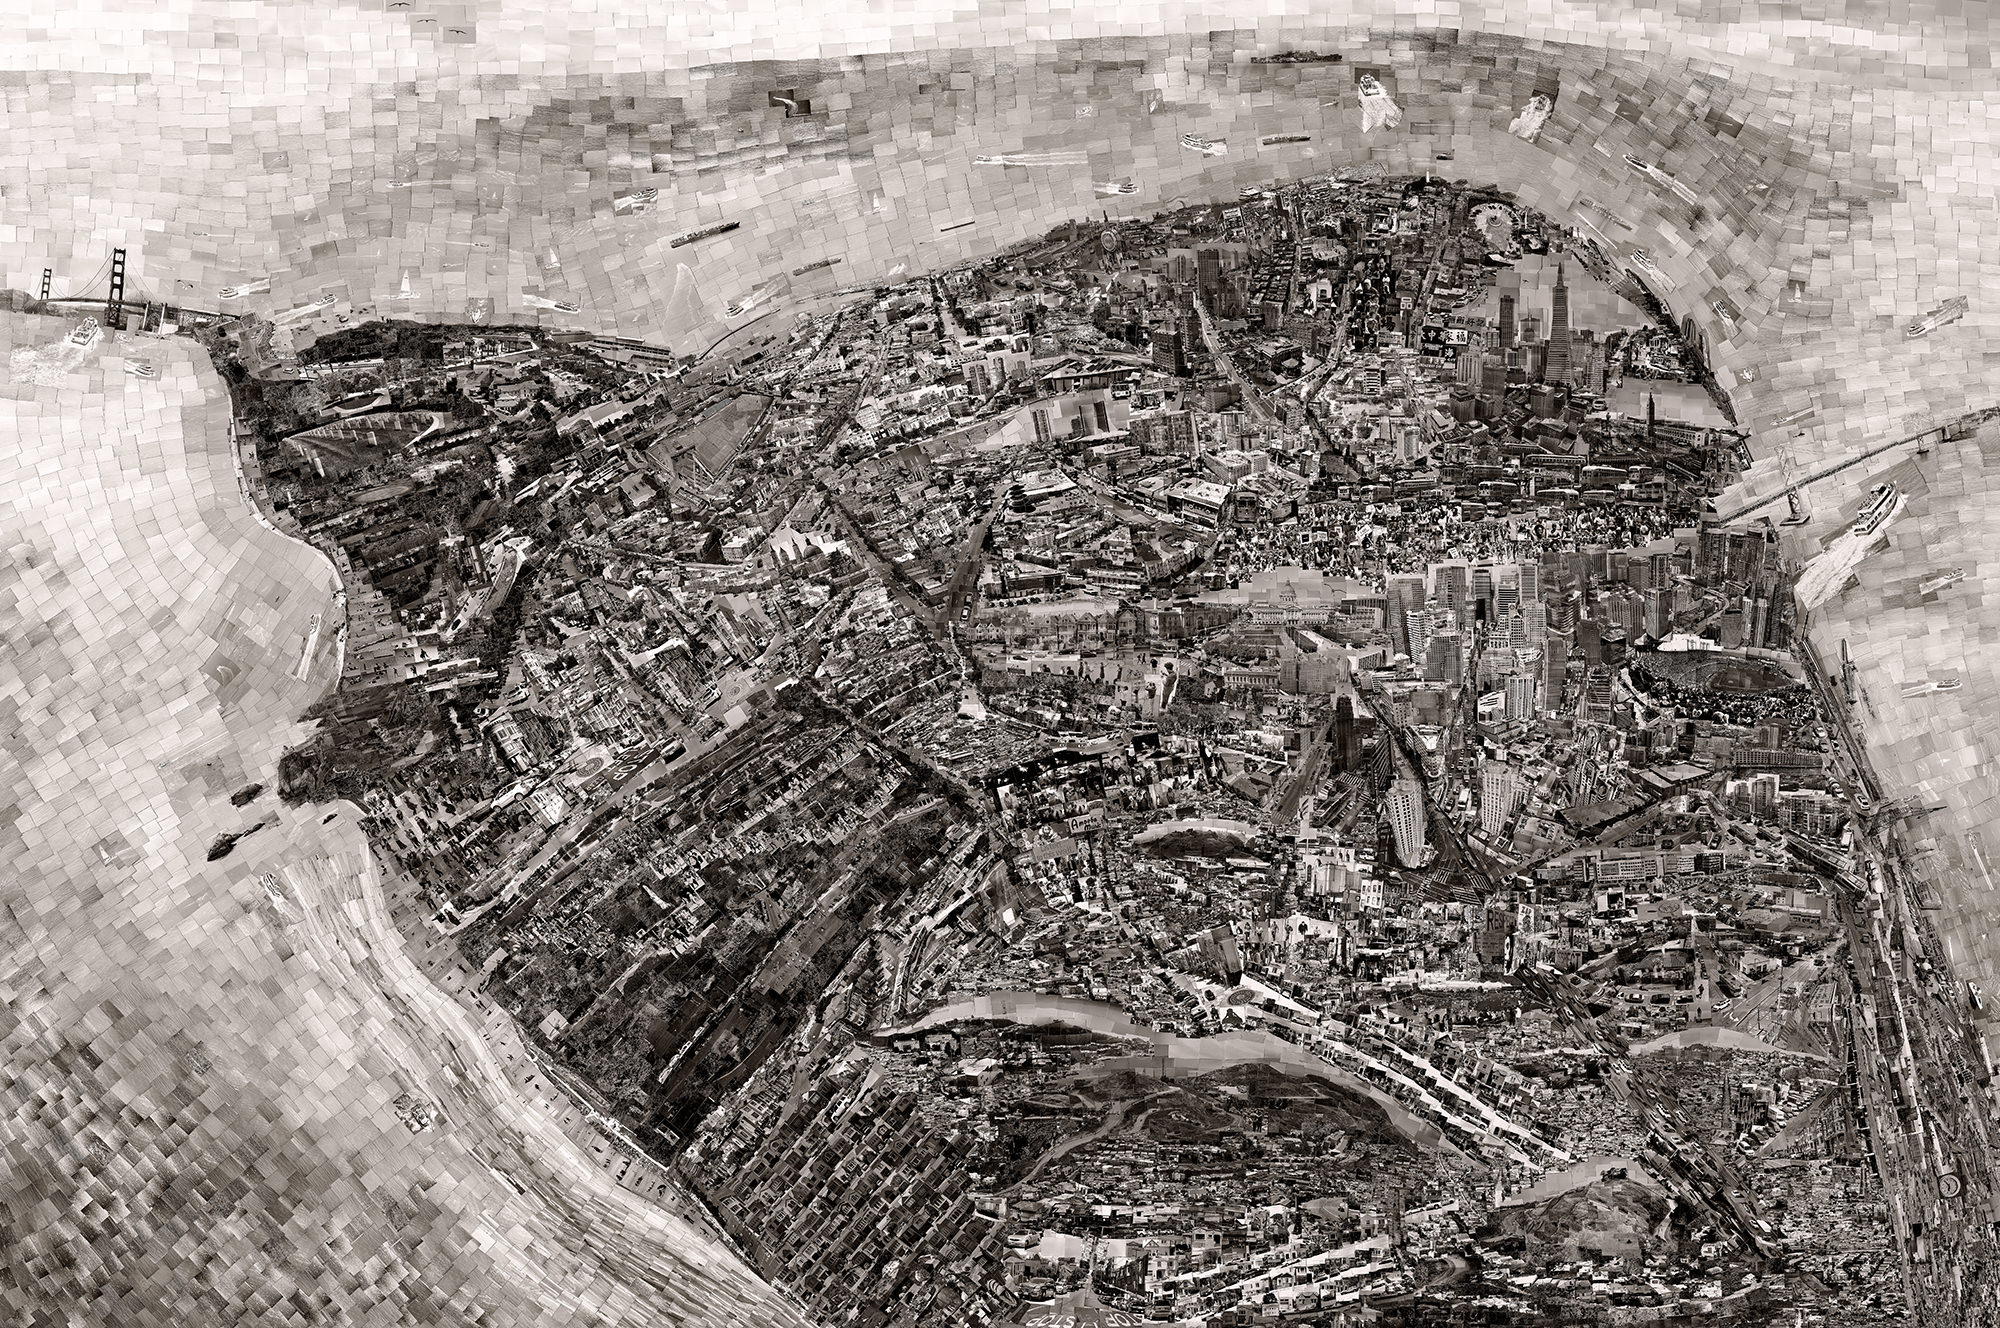 Anthropic landscapes of urban environments / Sohei Nishino